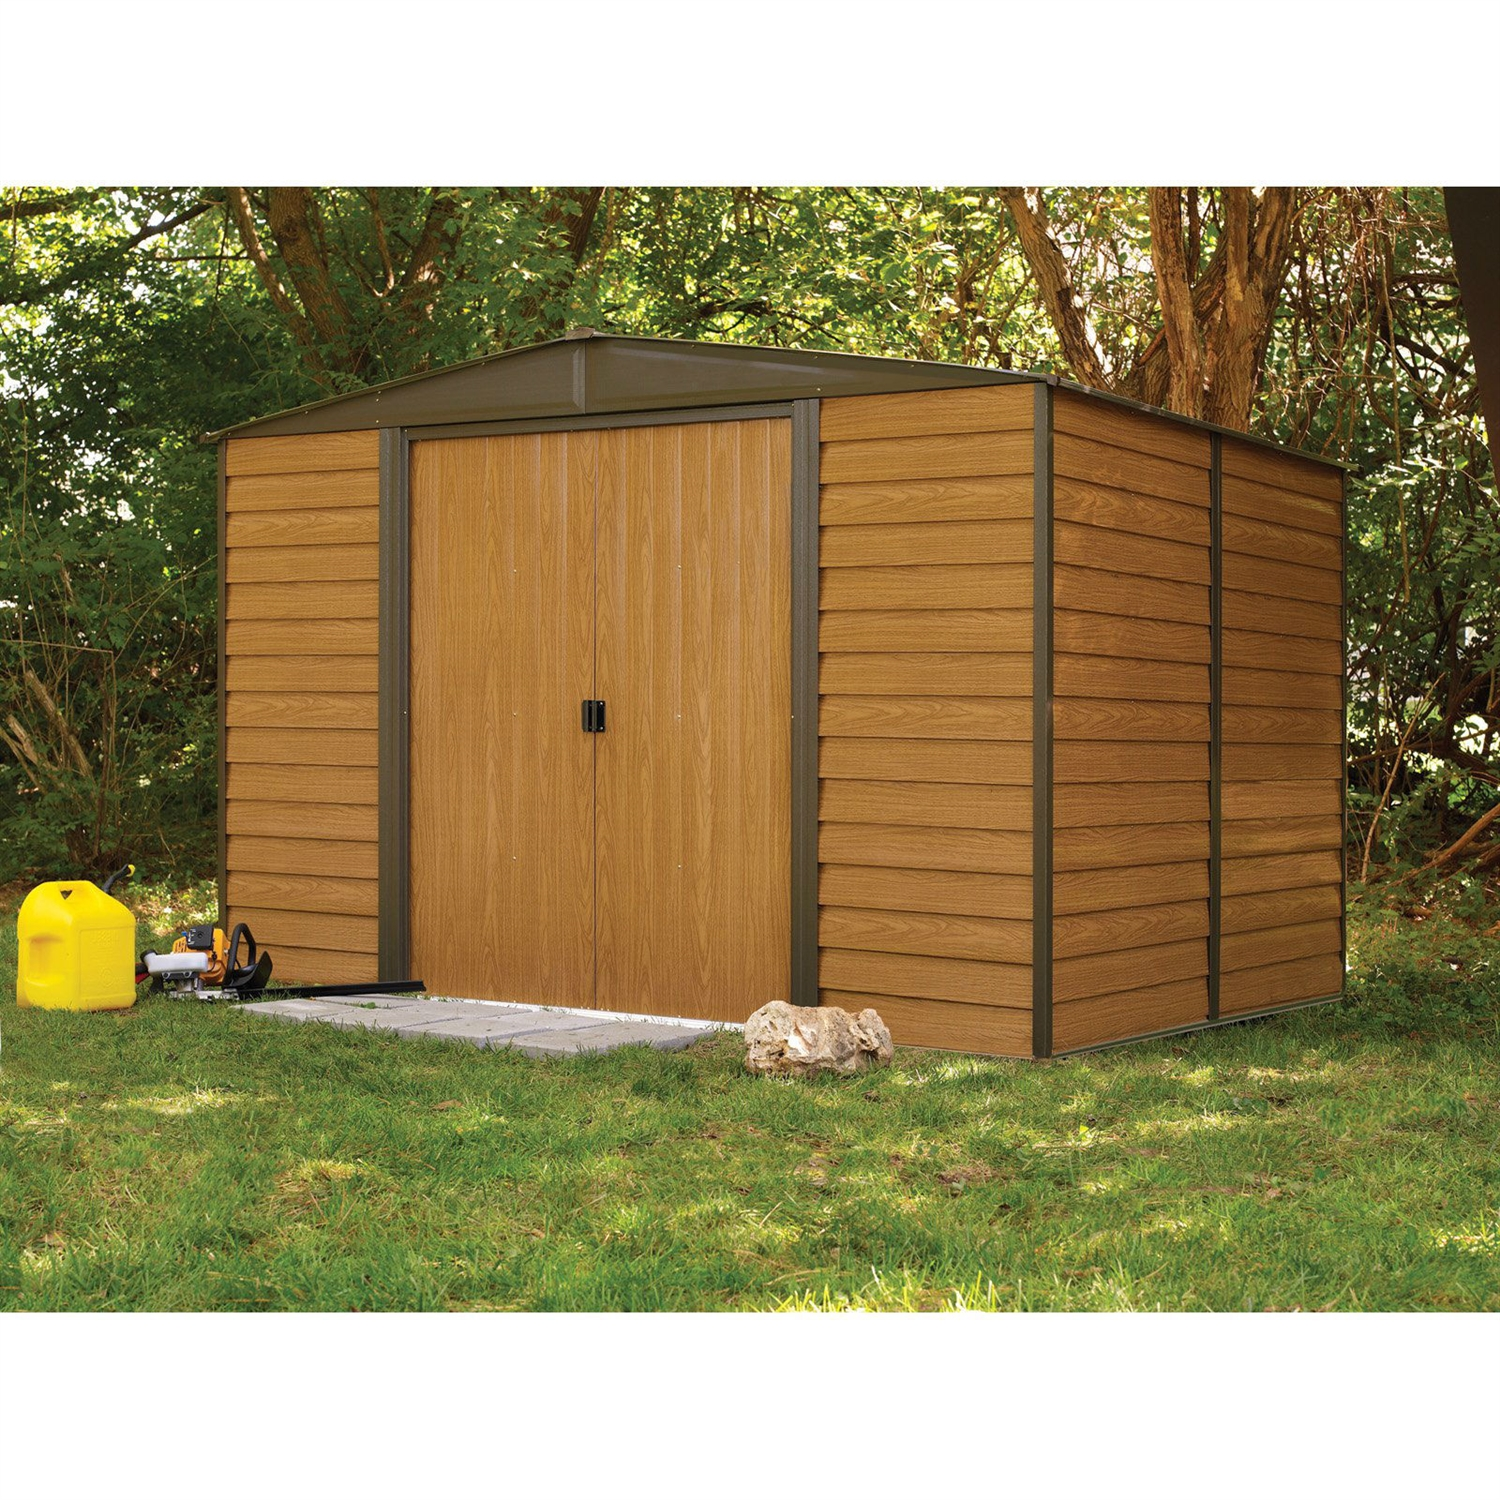 Outdoor 10 x 12 ft steel storage shed with woodgrain panels